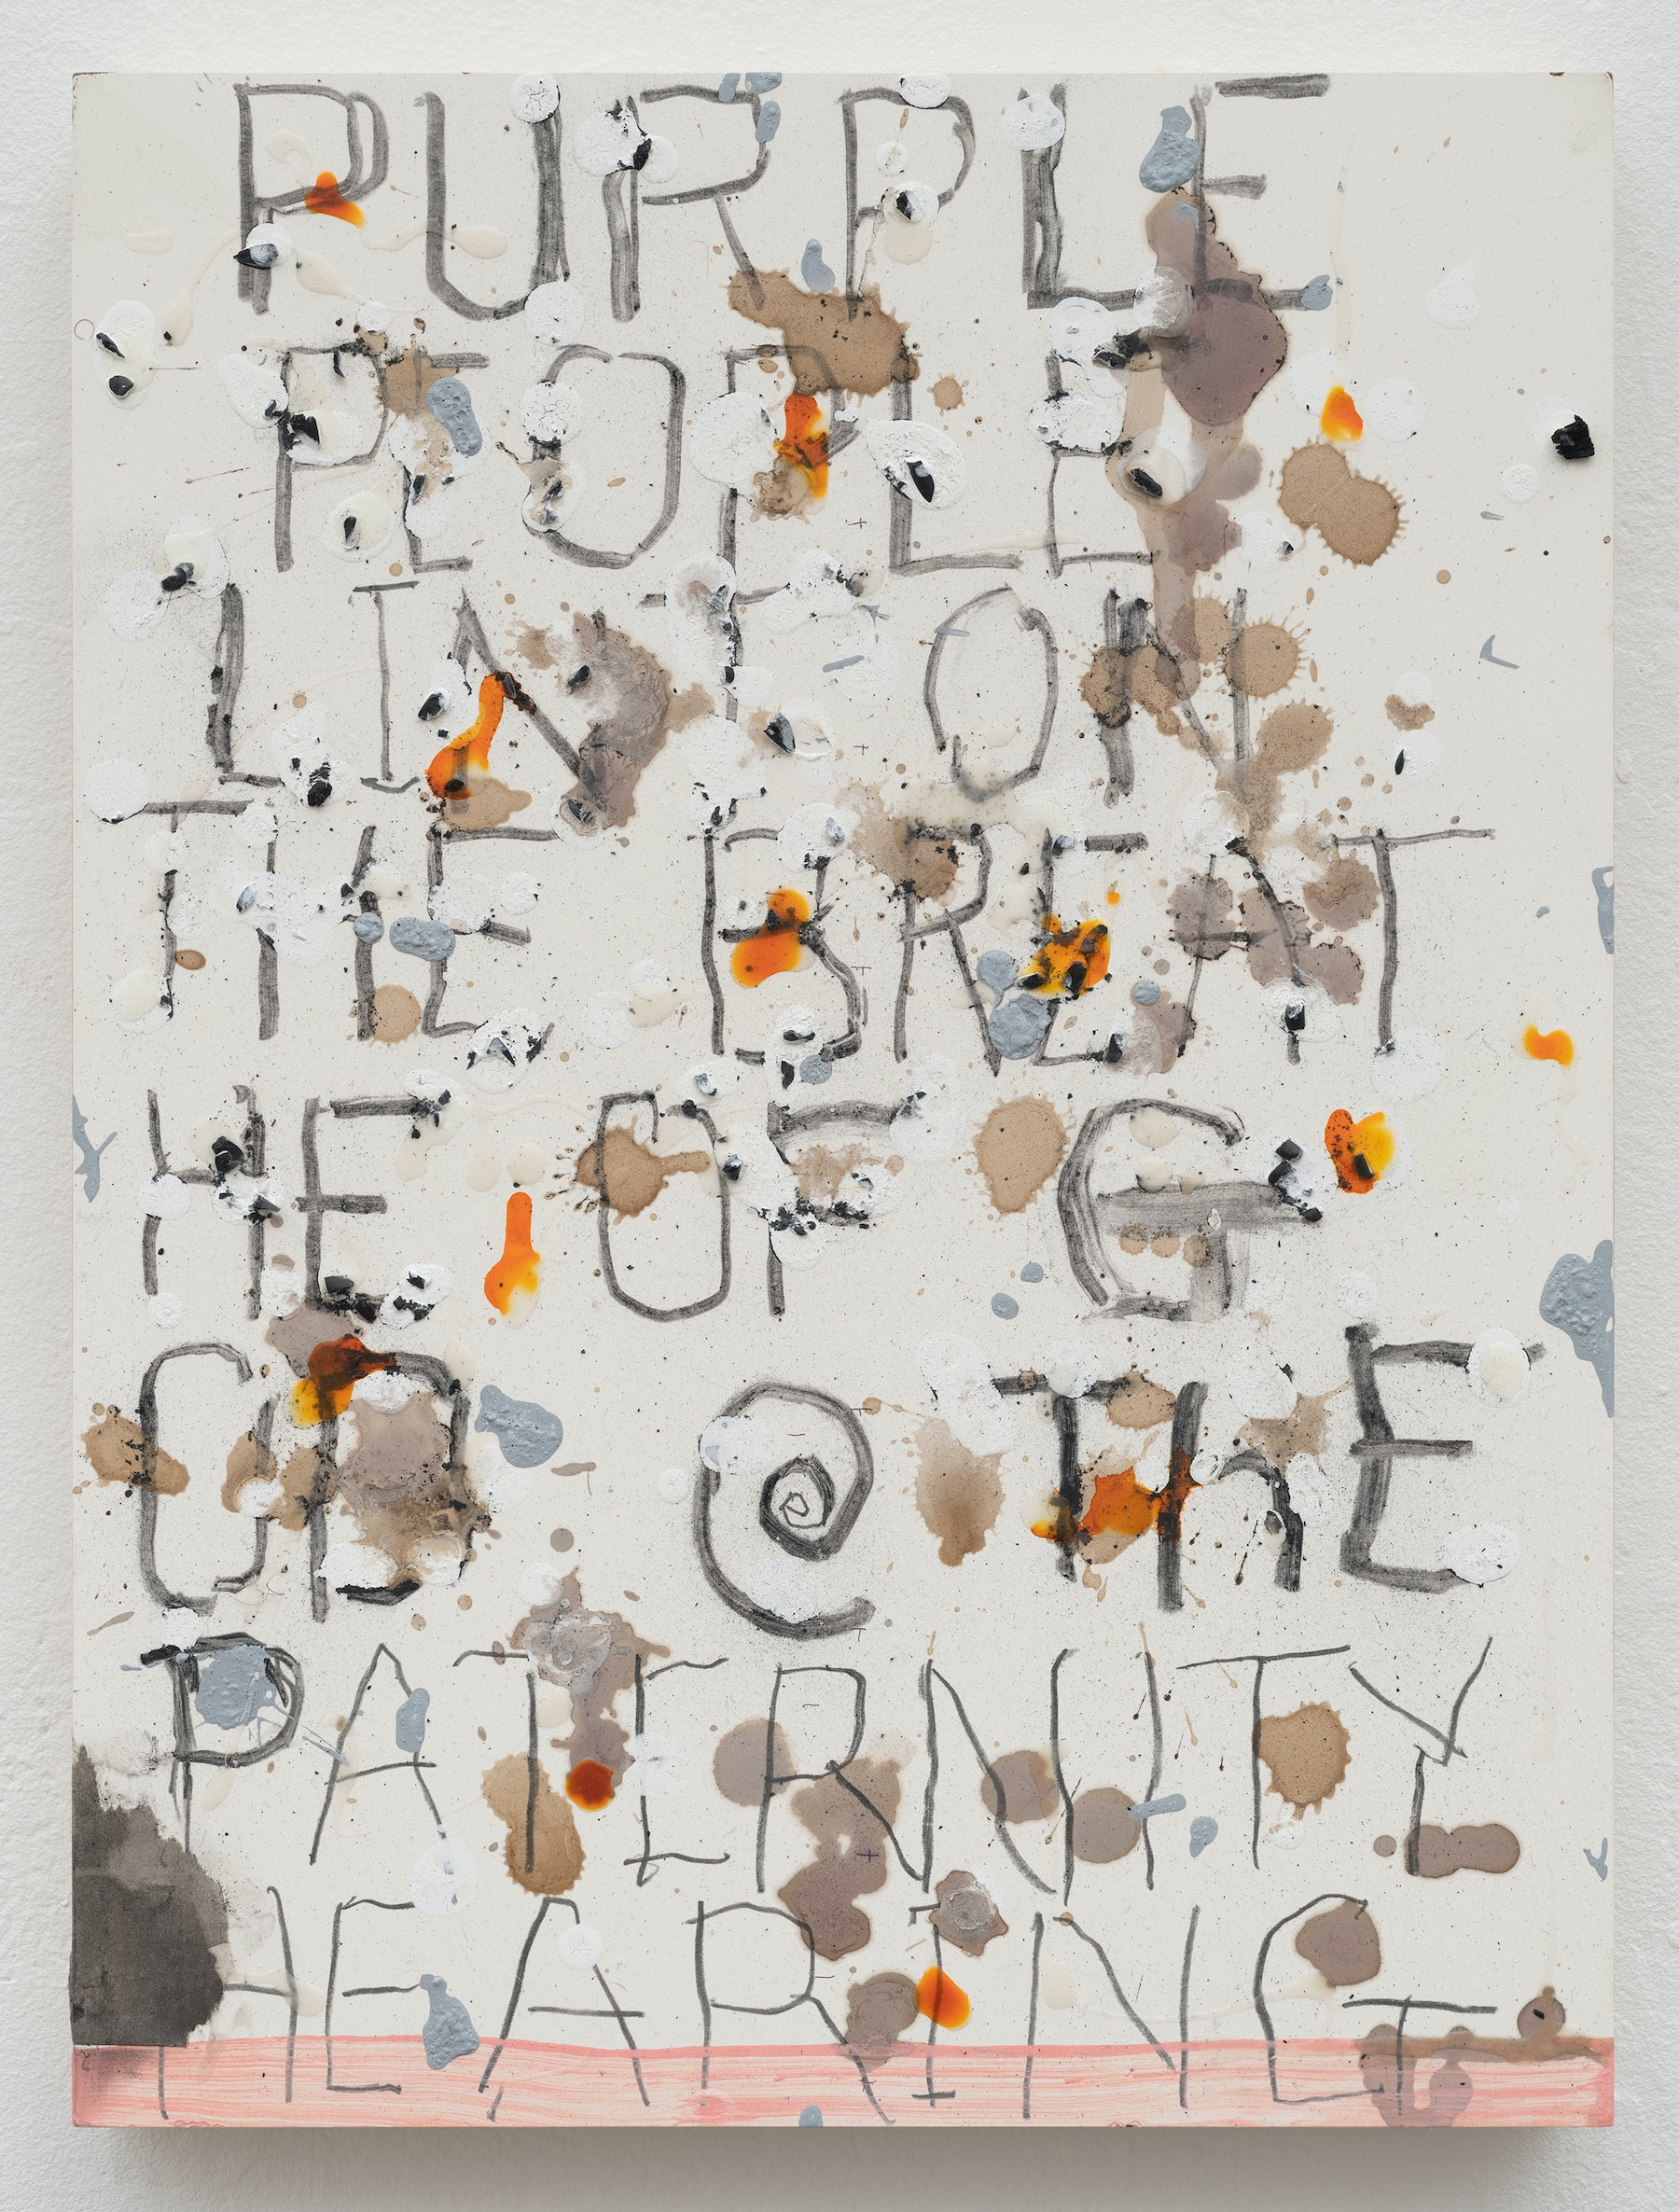 """Pope.L """"Hearing, A Sense Of,"""" 2019 Acrylic, ink, matte medium, wine, and coffee on panel 16"""" x 12"""" x 1 ¹⁄₂"""" [HxWxD] (40.64 x 30.48 x 3.81 cm) Inventory #POP343 Courtesy of the Artist and Vielmetter Los Angeles. © Pope.L Photos credit: James Prinz"""